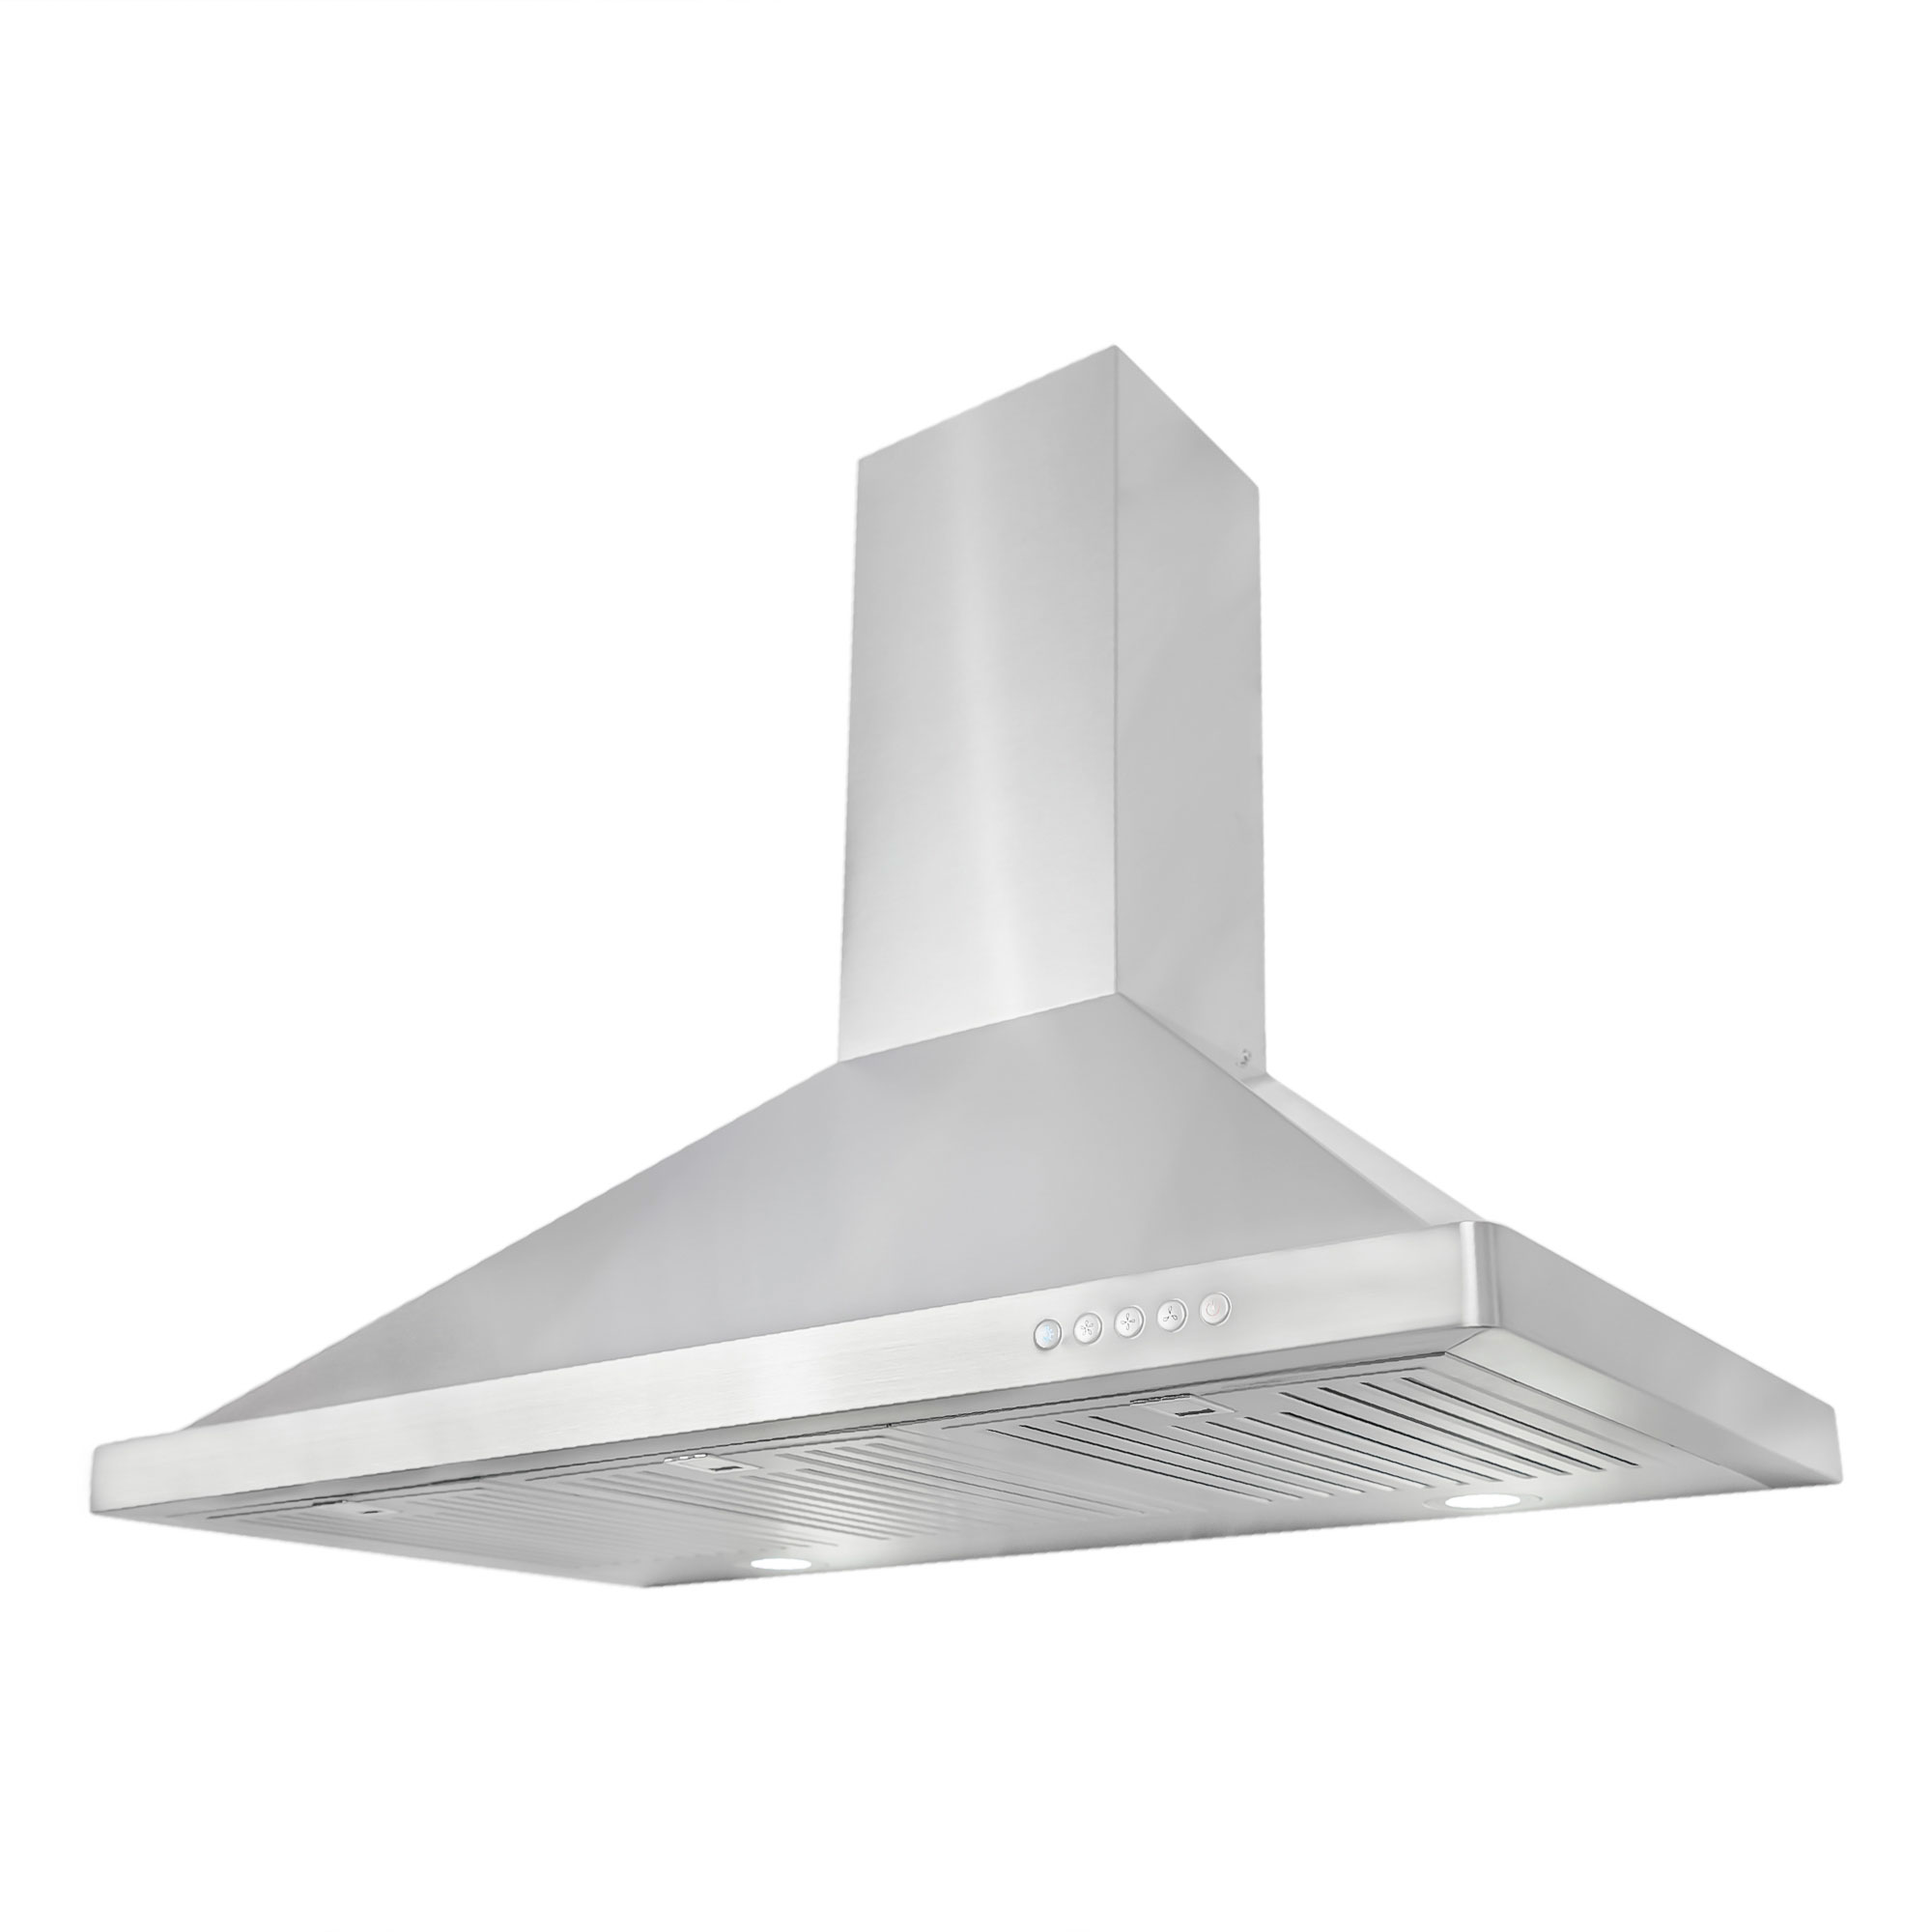 Wall Exhaust Hood ~ In wall mount range hood cosmo appliances ft